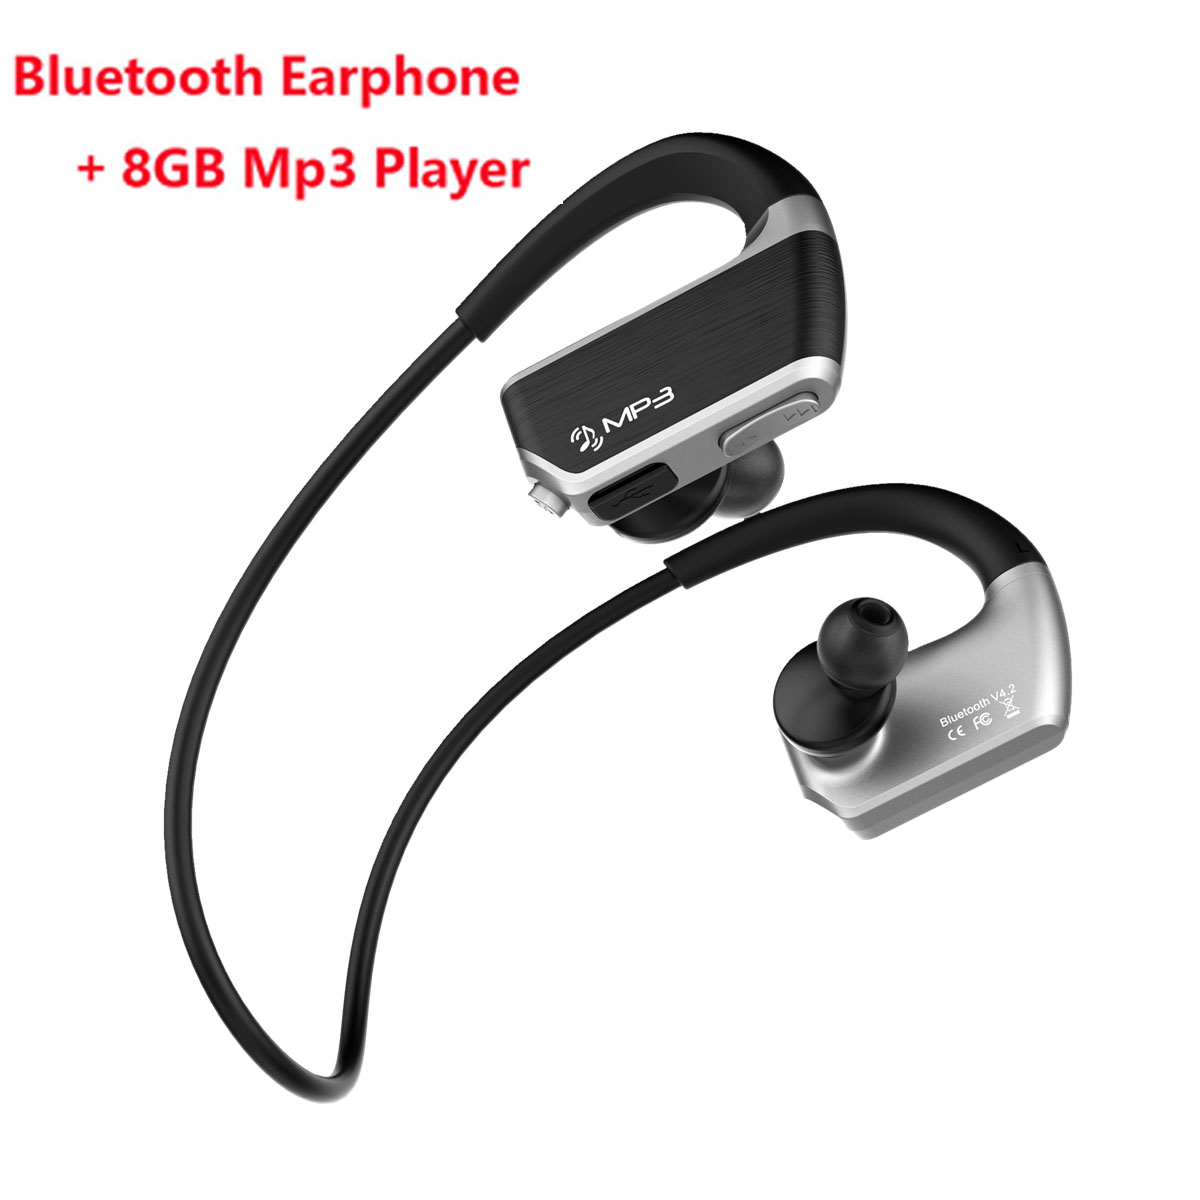 J2 IPX4 Waterproof Mp3 Music Player 8GB+Wireless Bluetooth Earphone Sport Earbuds Headset Handsfree Headphone with Mic for Phone цена